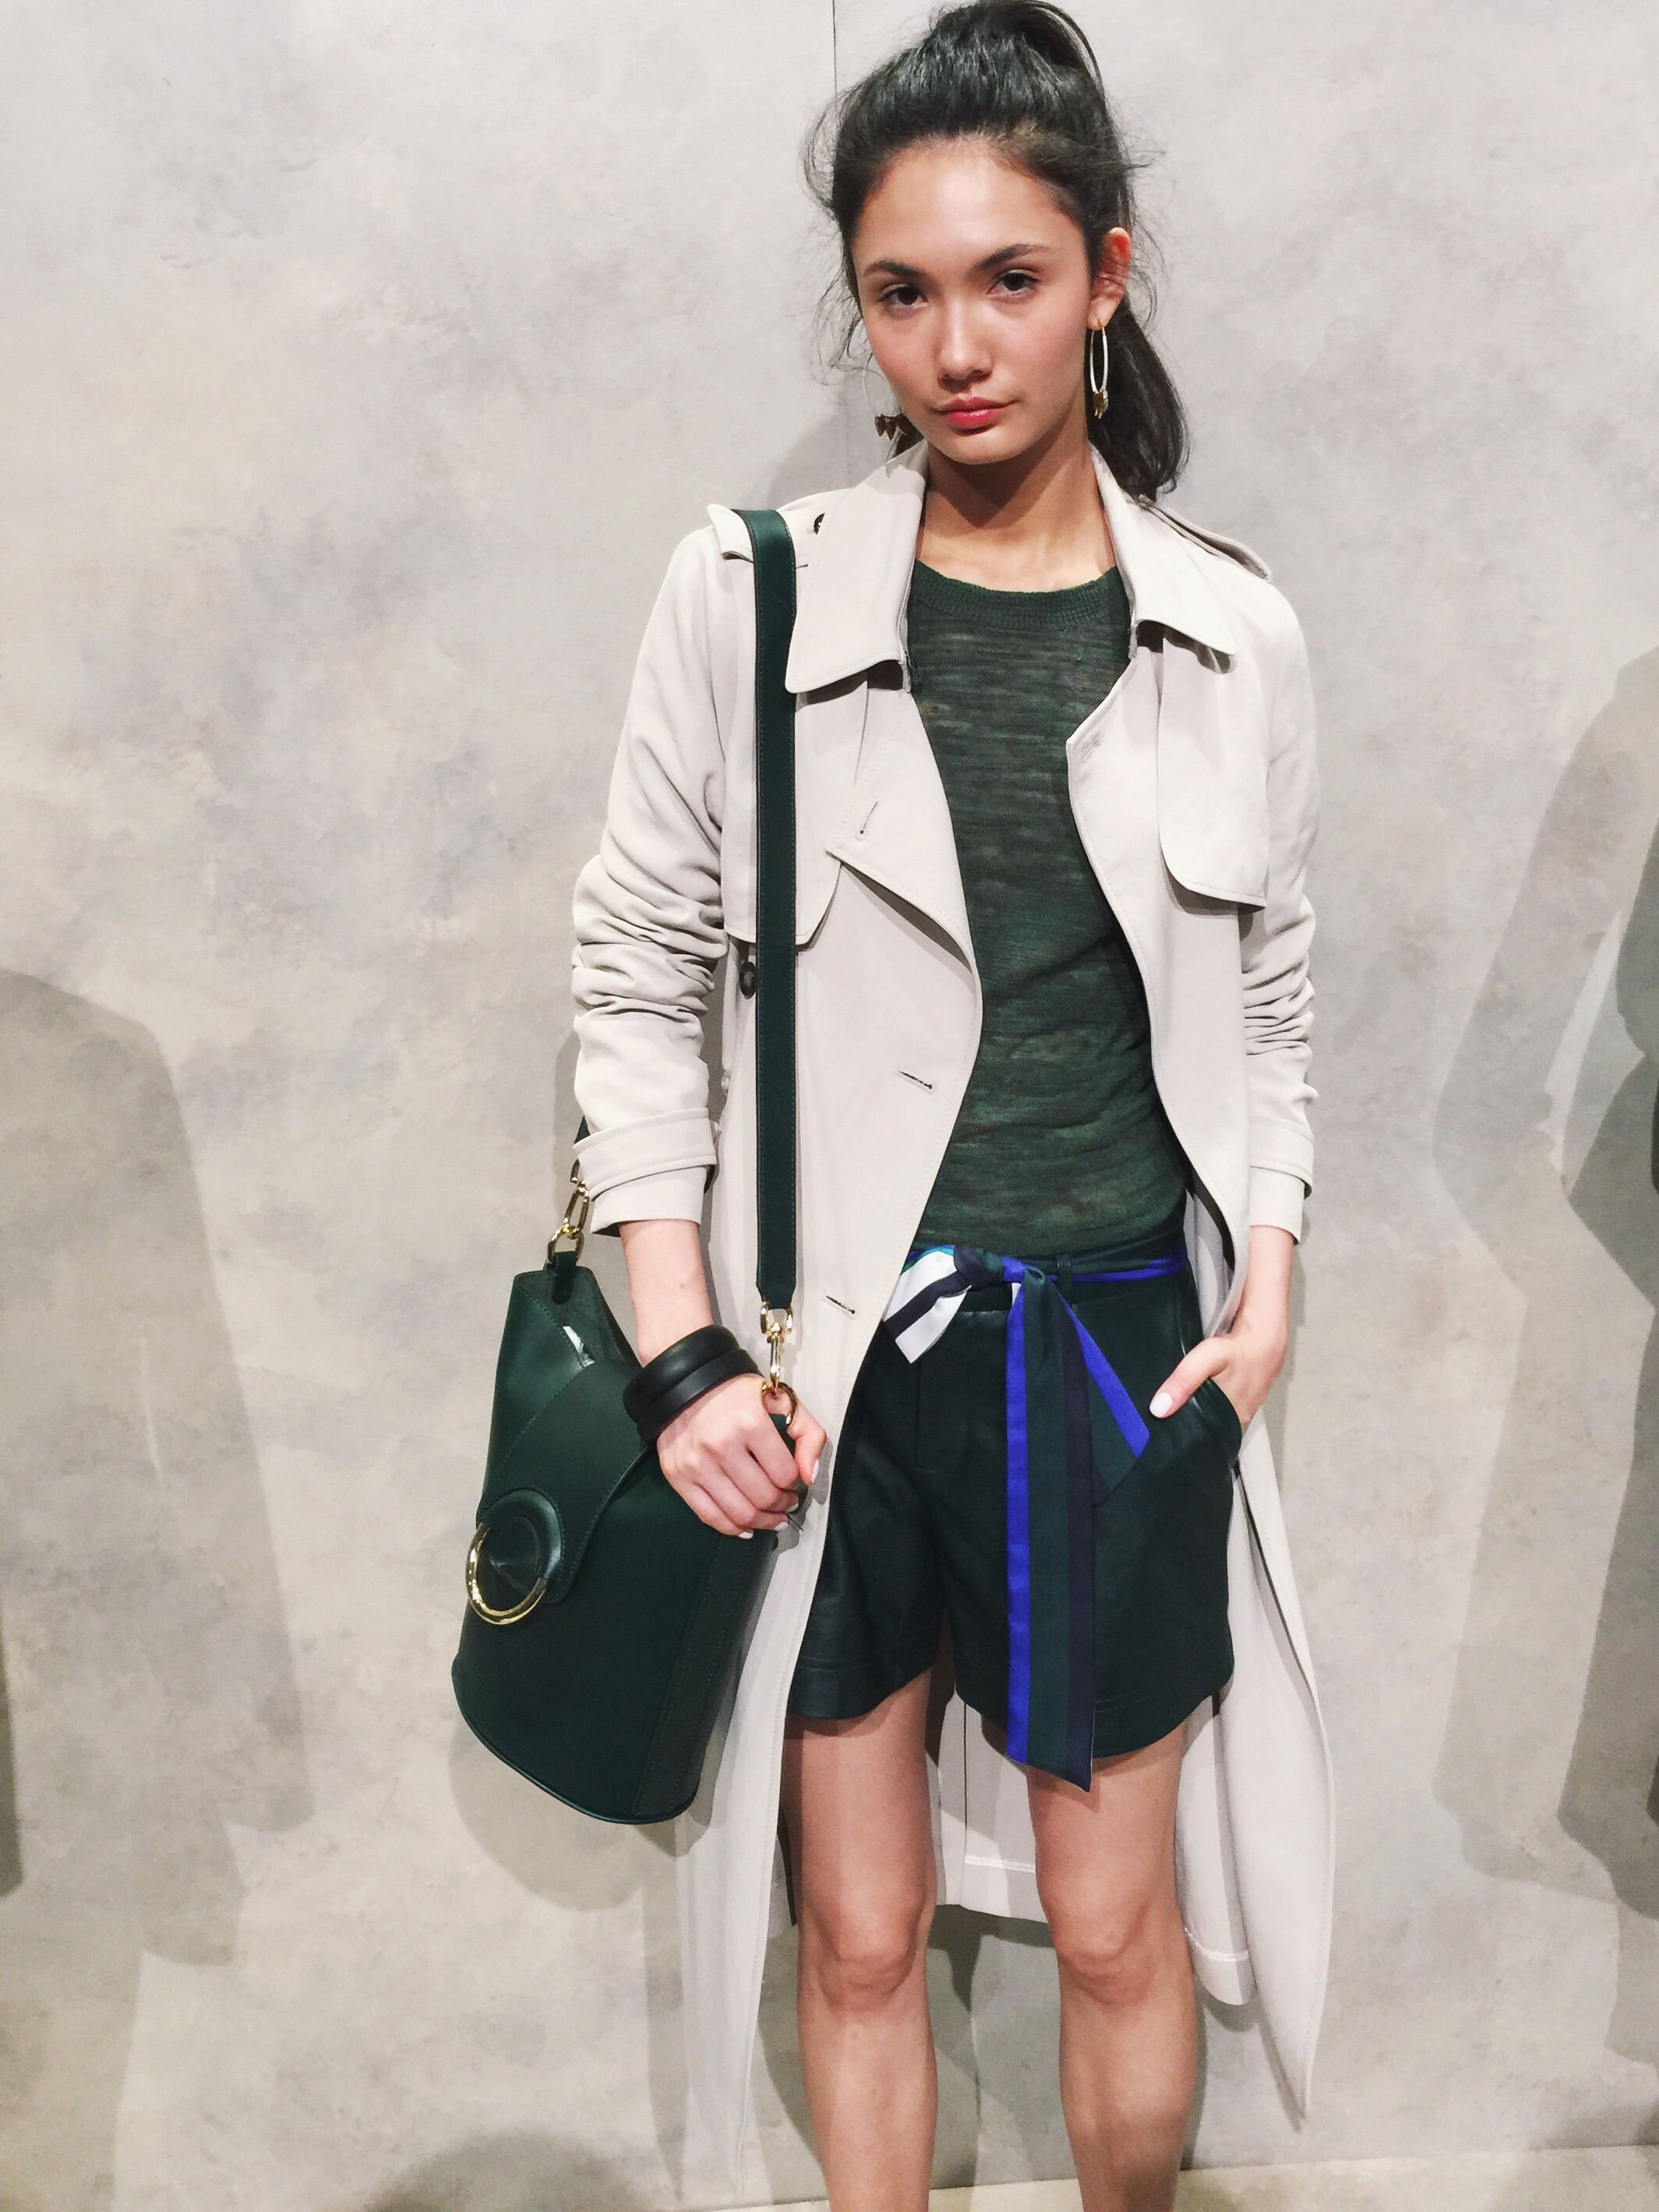 Again, forest green, but this time in faux leather shorts paired with a classic trench. A longer jacket, vest or cardigan over shorts or a dress is a current popular trend. It looked as though it's here to stay through Spring.